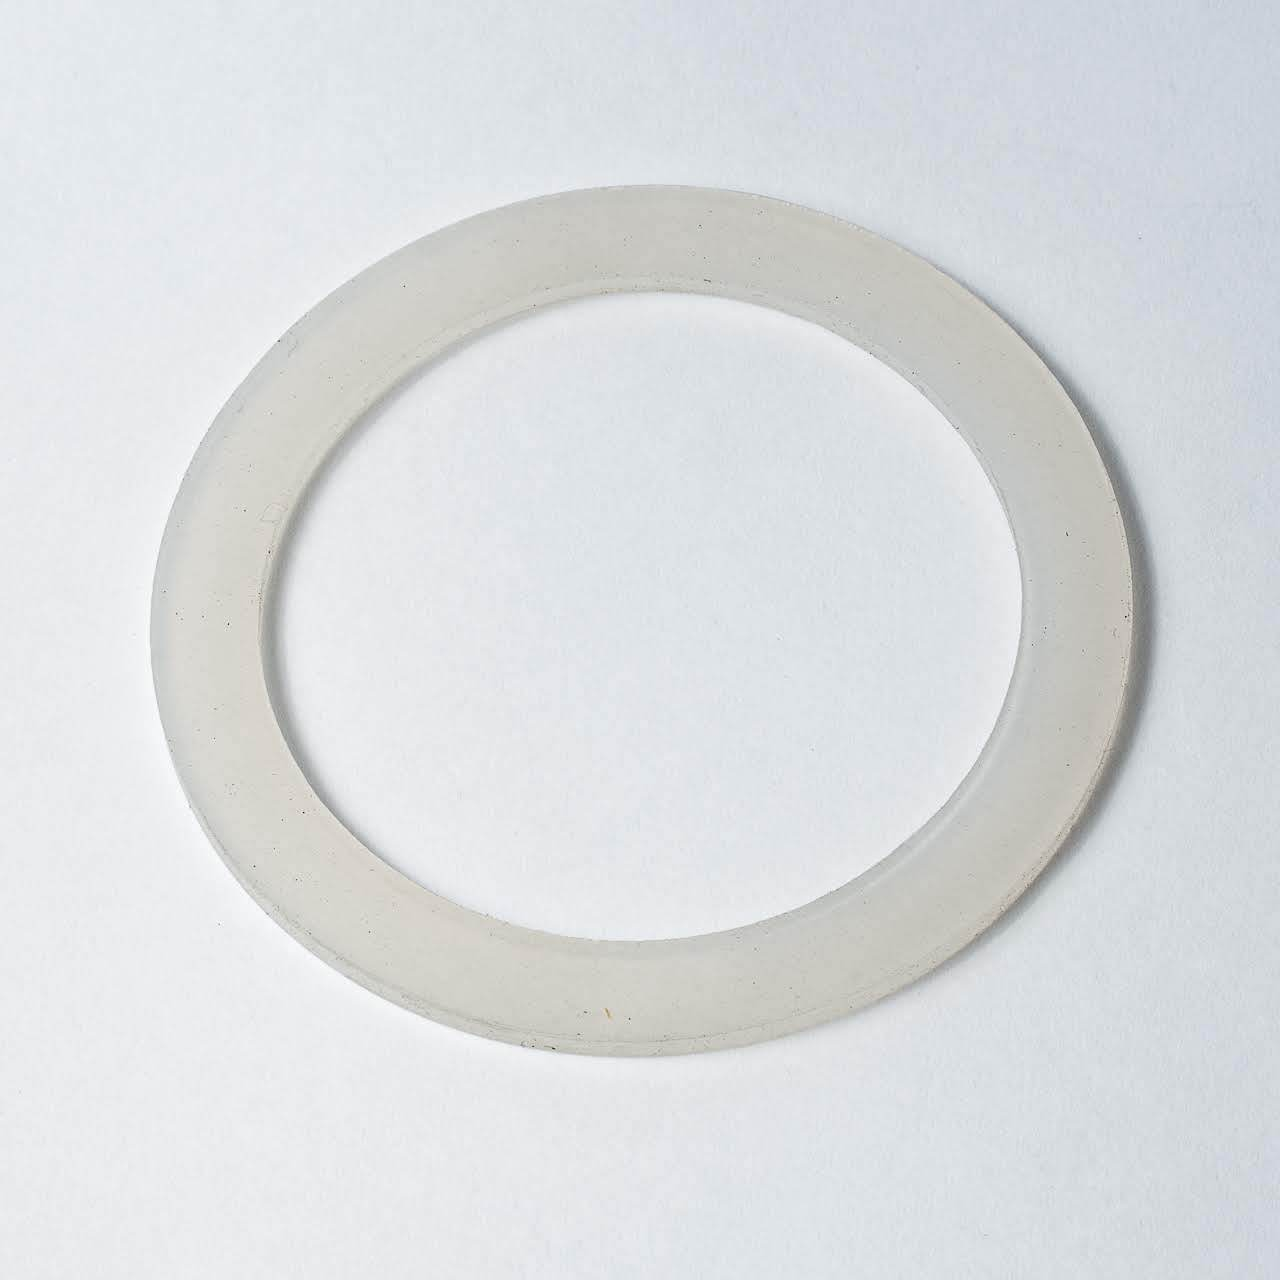 Gnali and Zani Morosina rubber gasket or washer, single clear ring